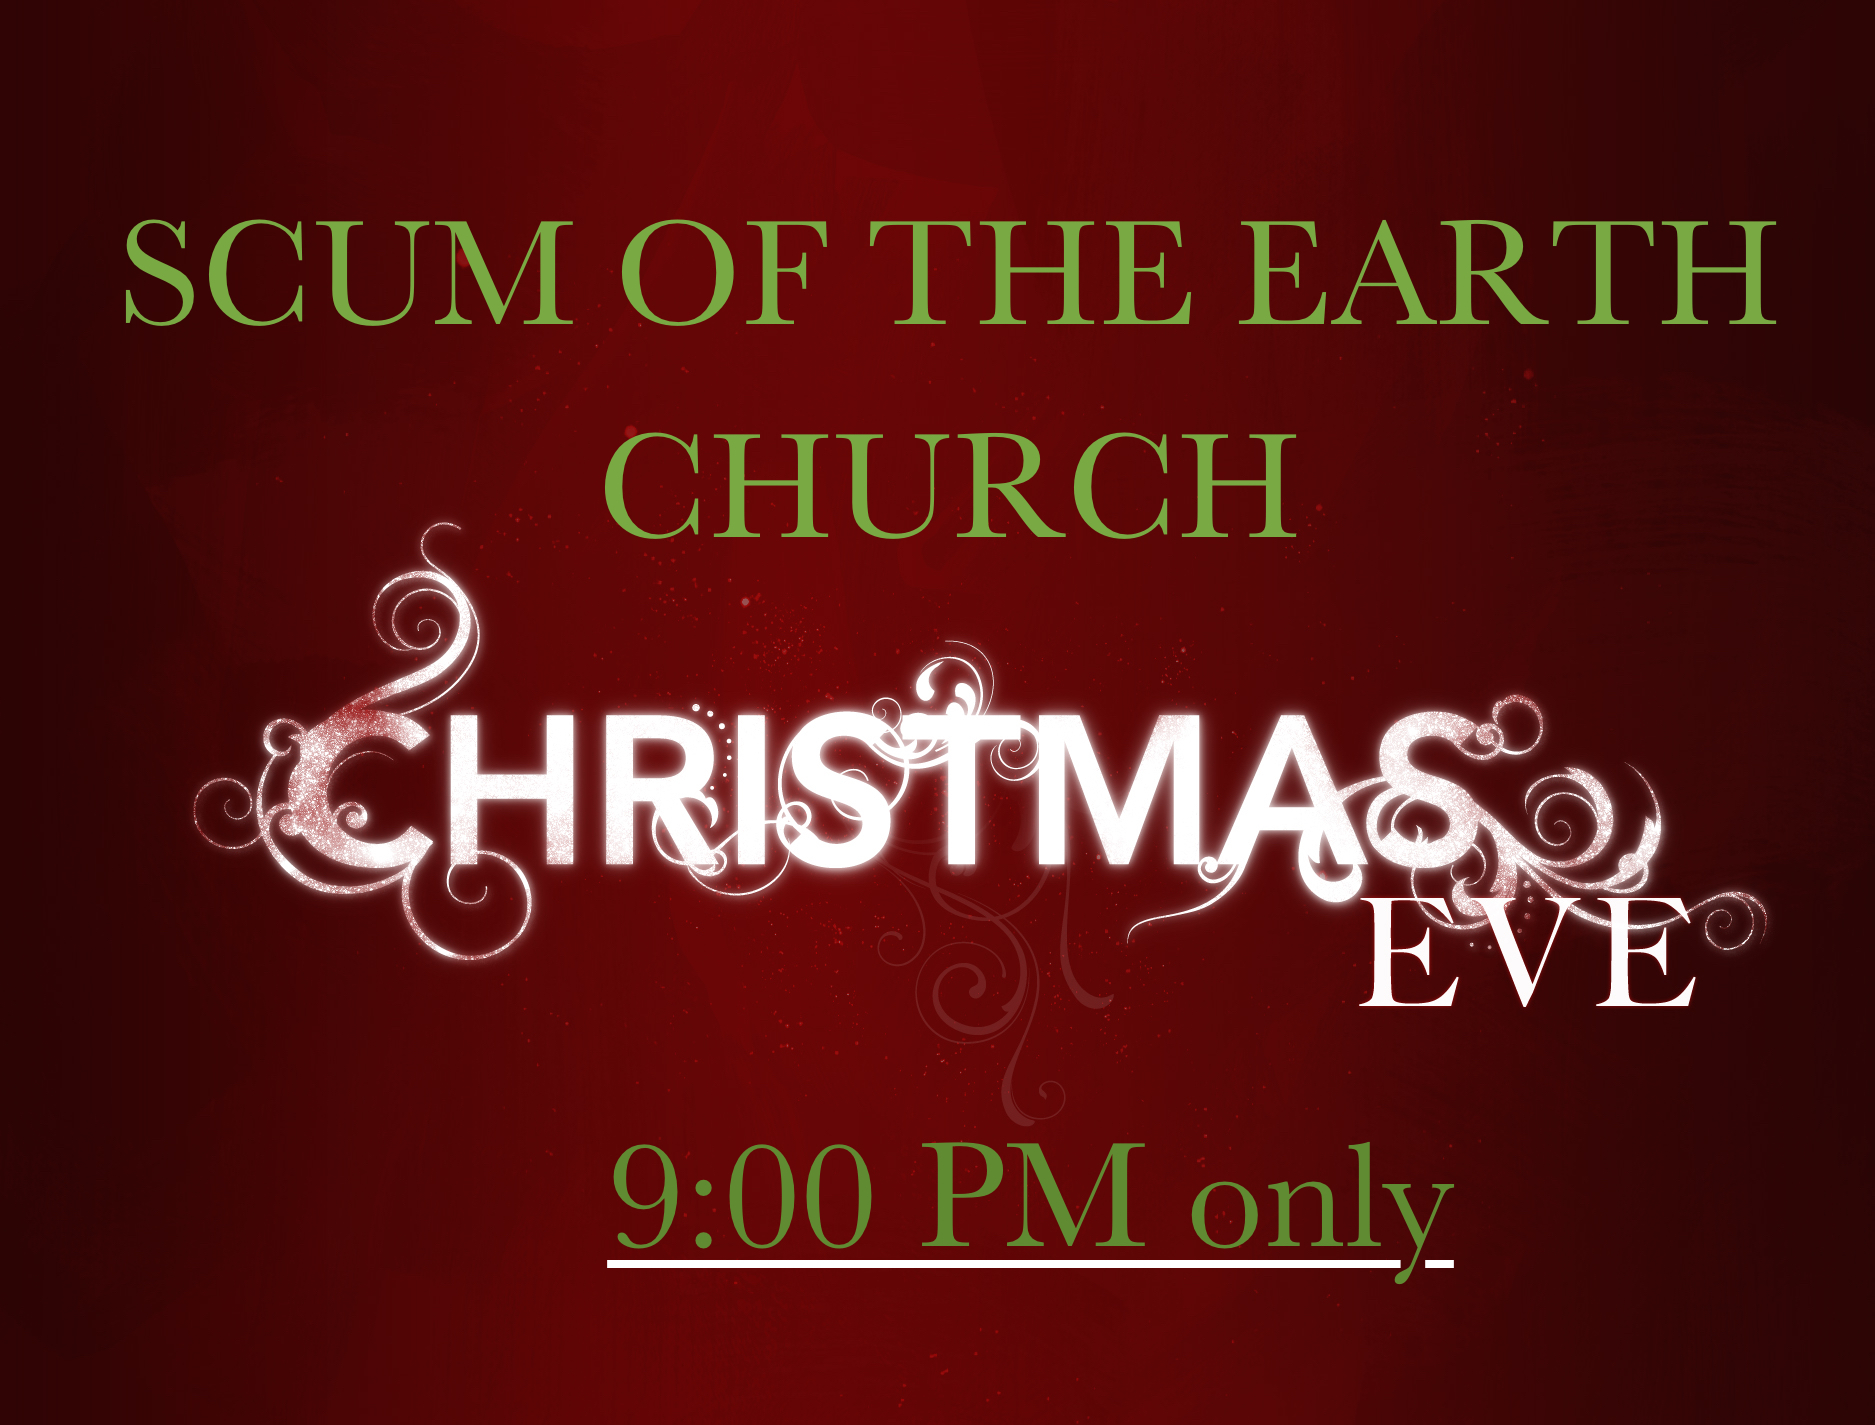 Scum of the Earth Church Christmas Eve Service: 9:00 PM